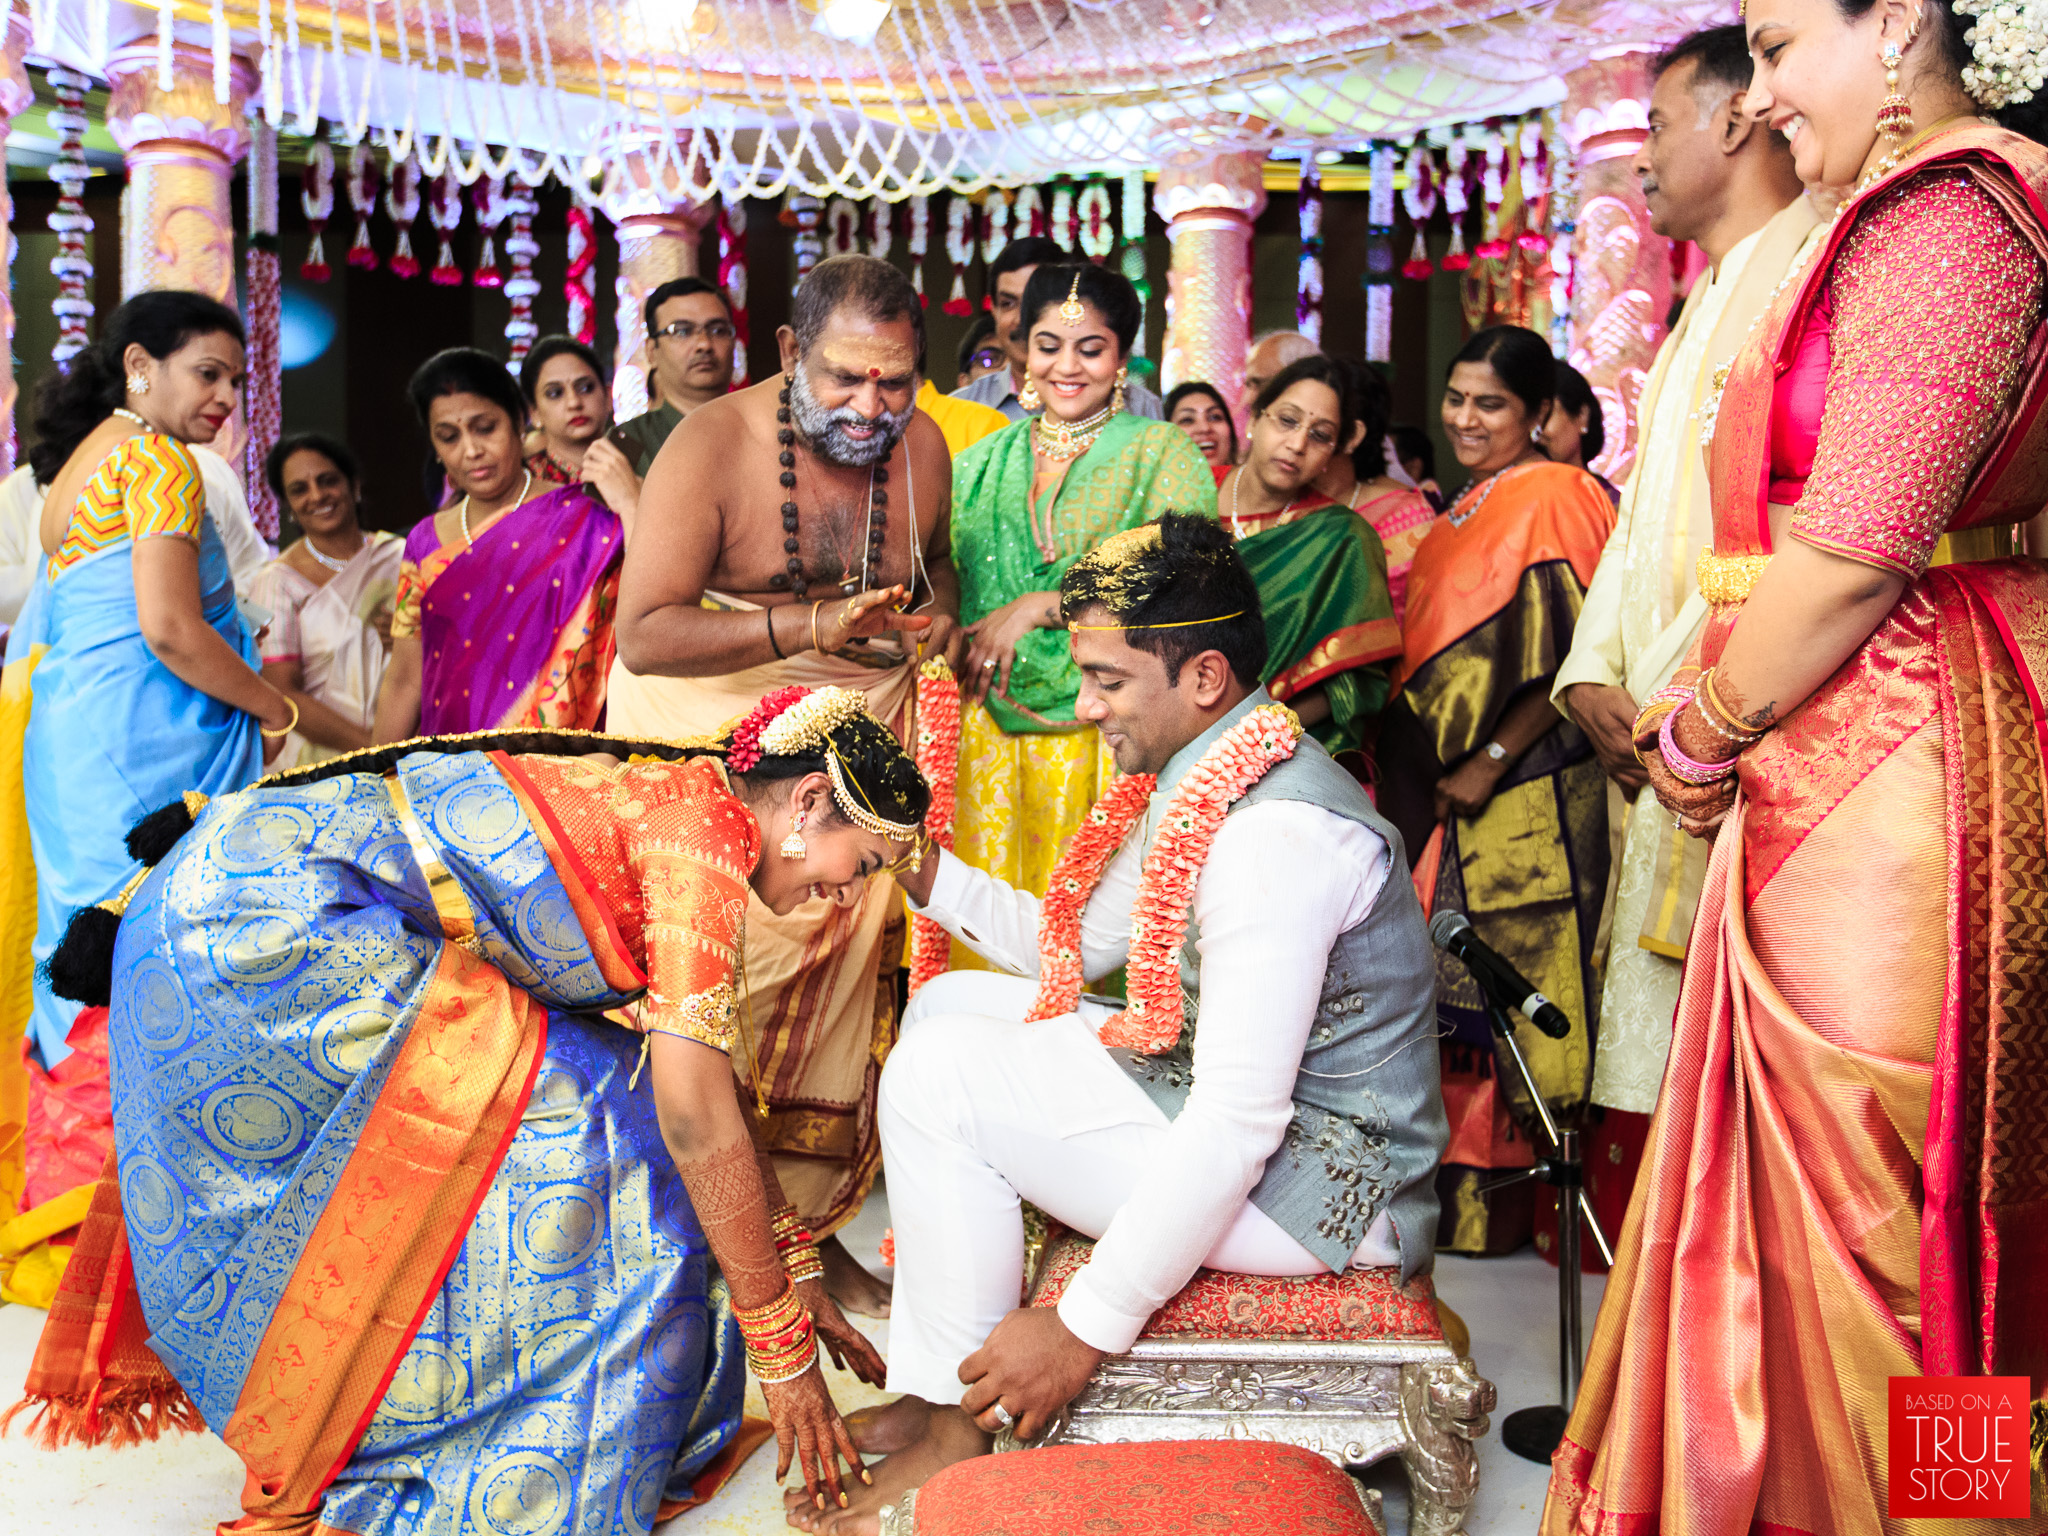 Candid-Wedding-Photography-Hyderabad-0062.jpg